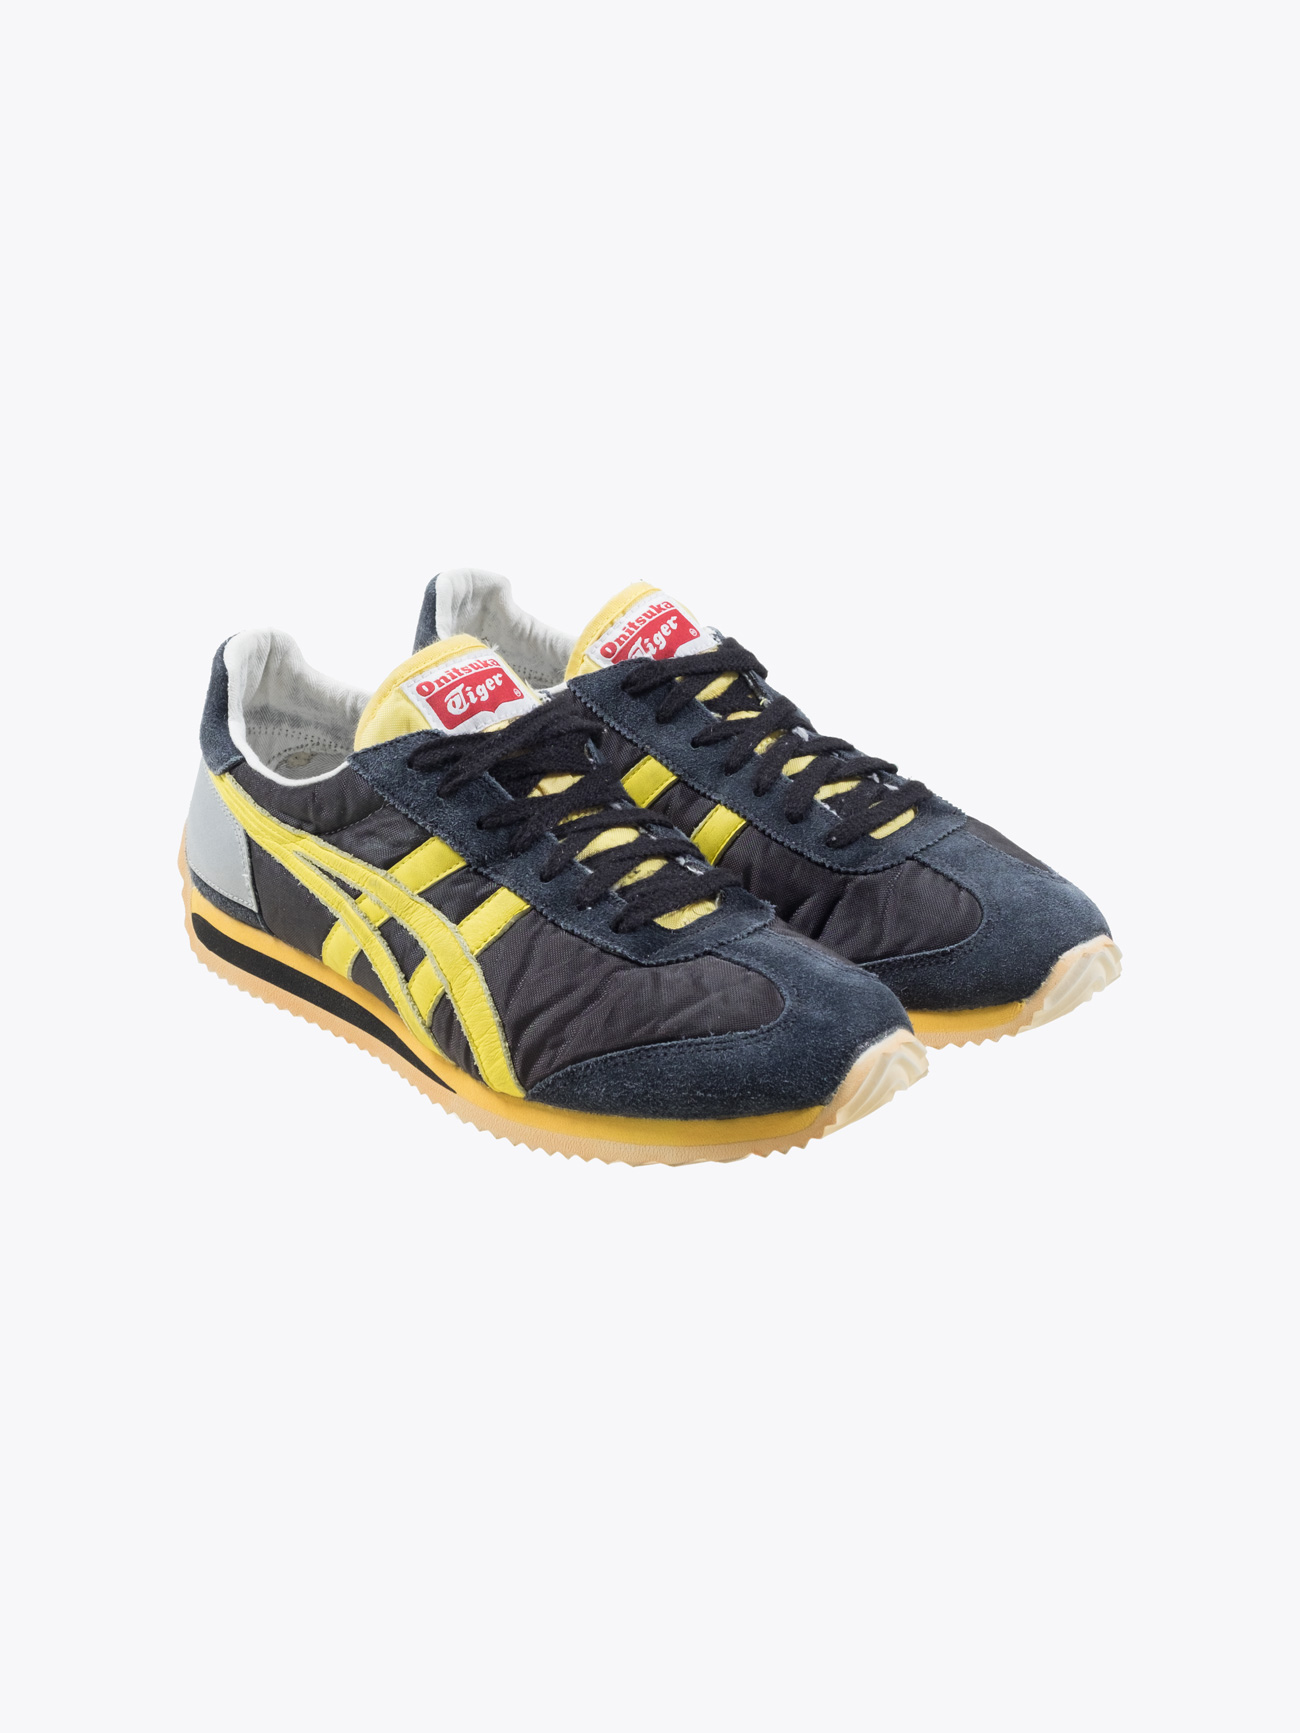 4491508bc6b5 Onitsuka Tiger - California 78 OG VIN Sneakers Black Blazing Yellow - E35  SHOP Outlet